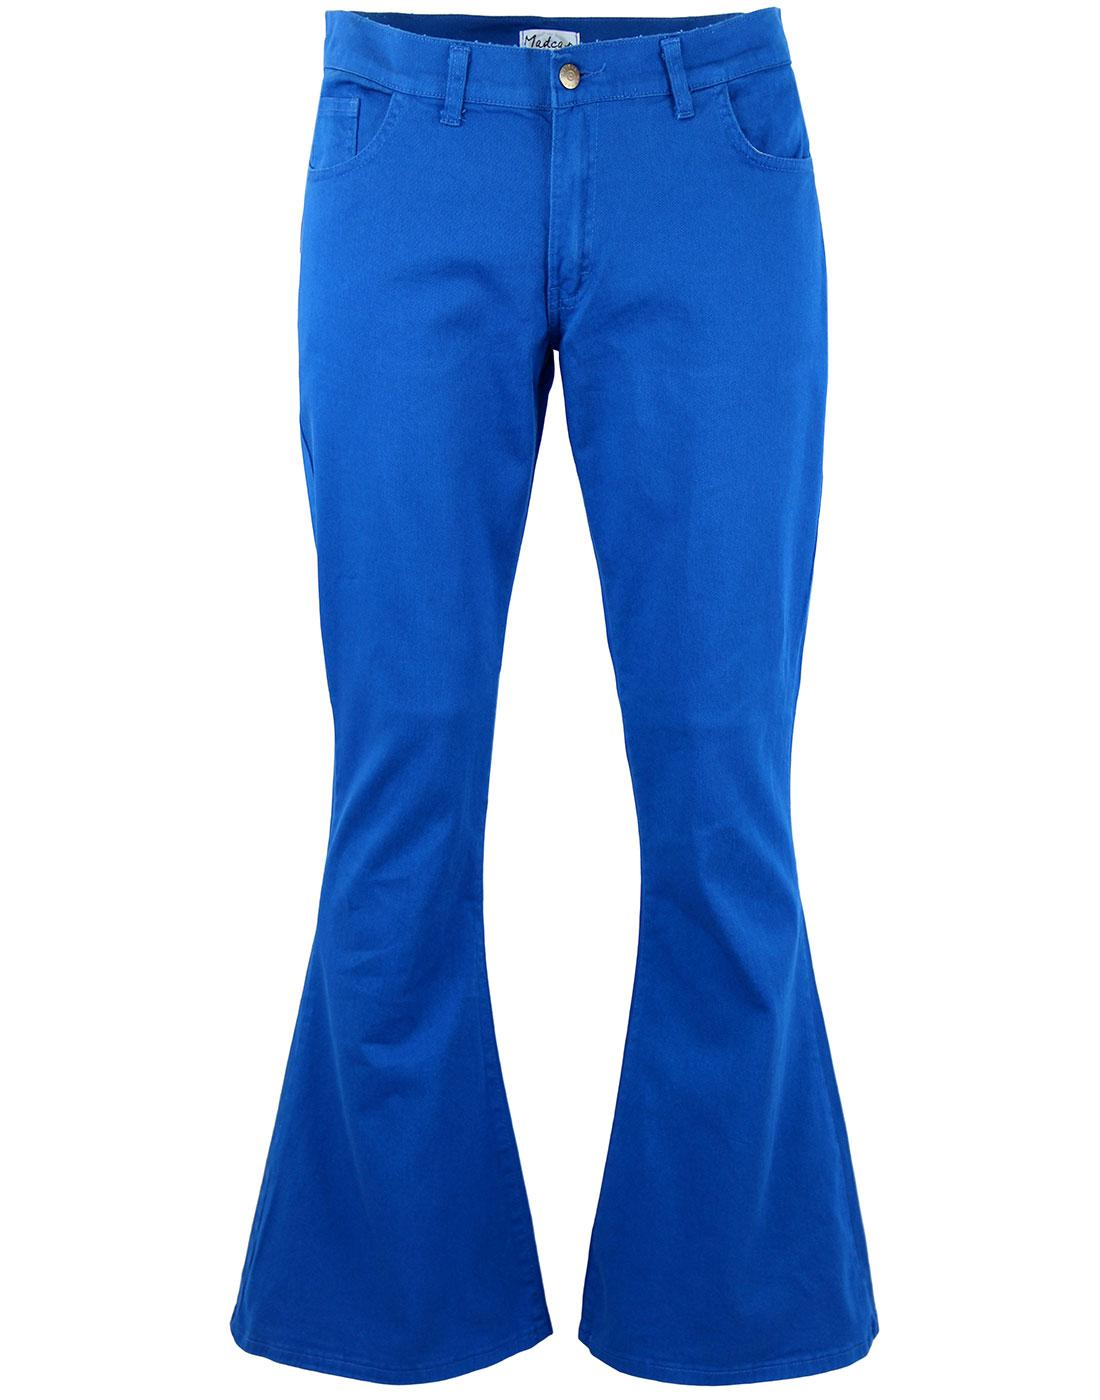 Bell bottoms 70s clipart black and white graphic 13th Floor Retro Seventies Stretch Twill Bellbottom Flares in Royal Blue graphic